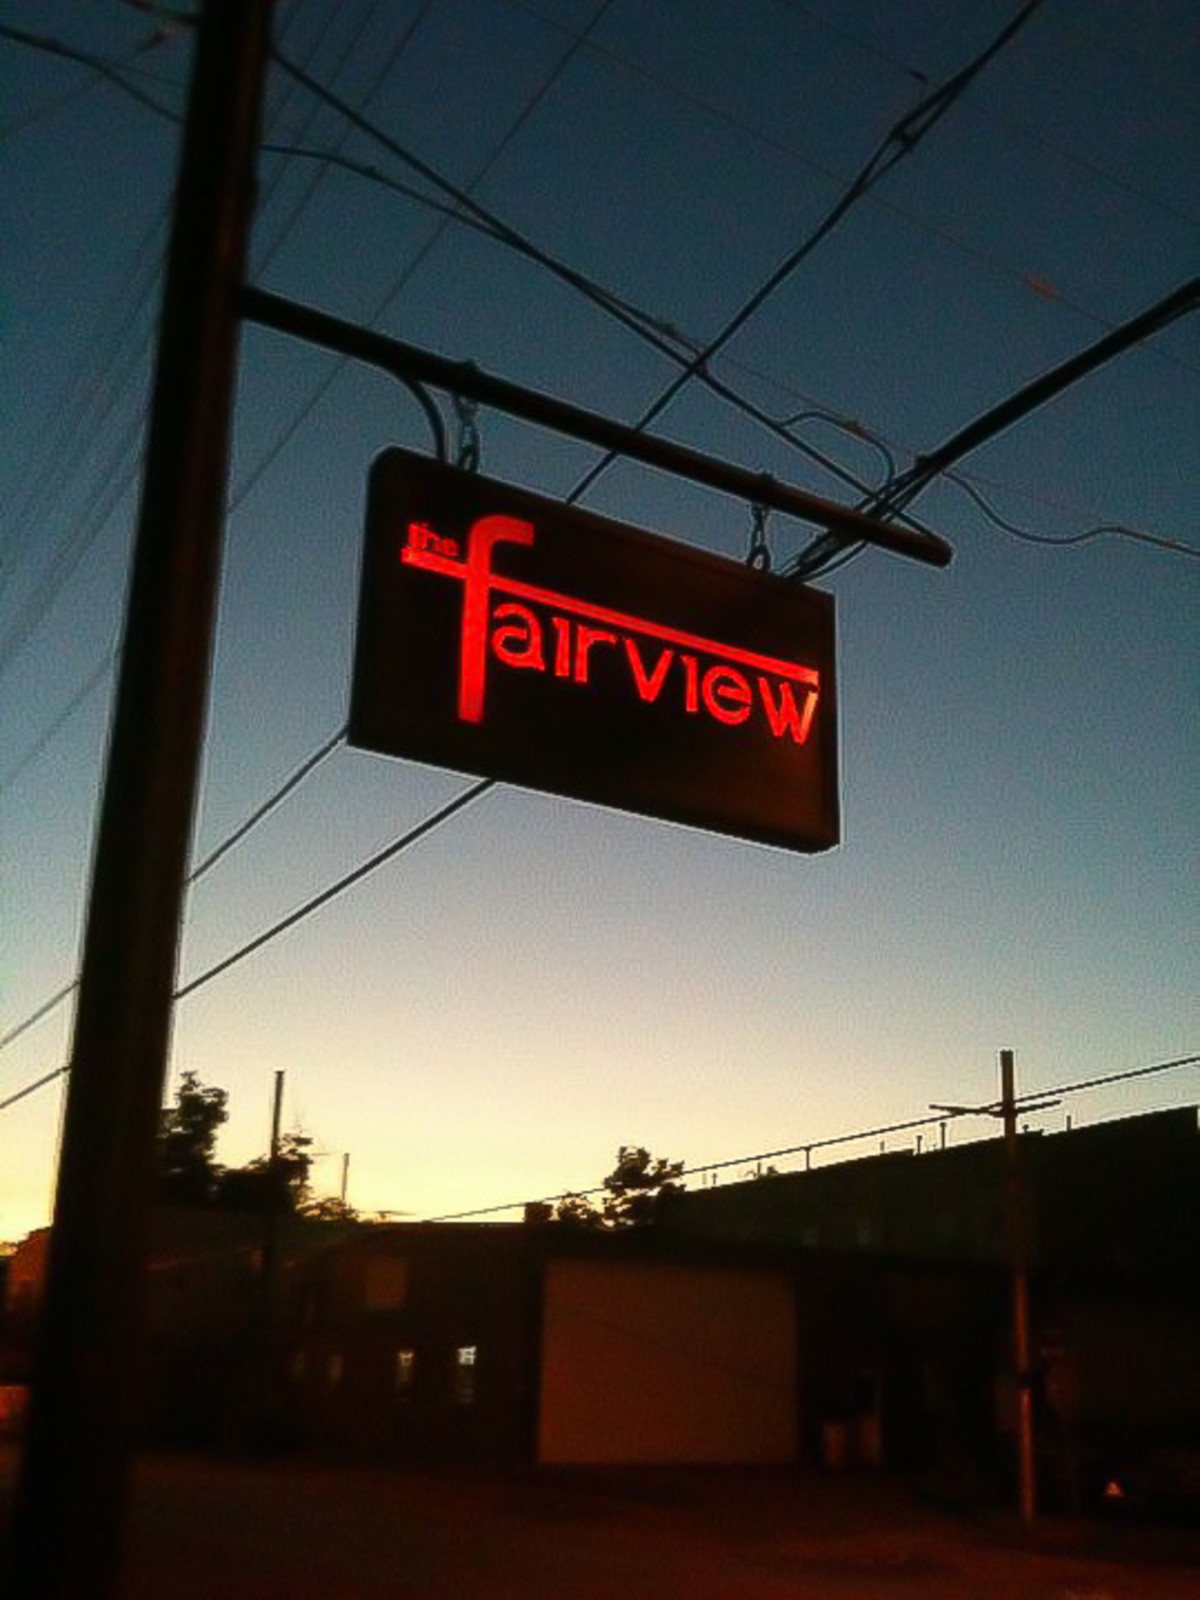 News_The Fairview_bar_neon sign